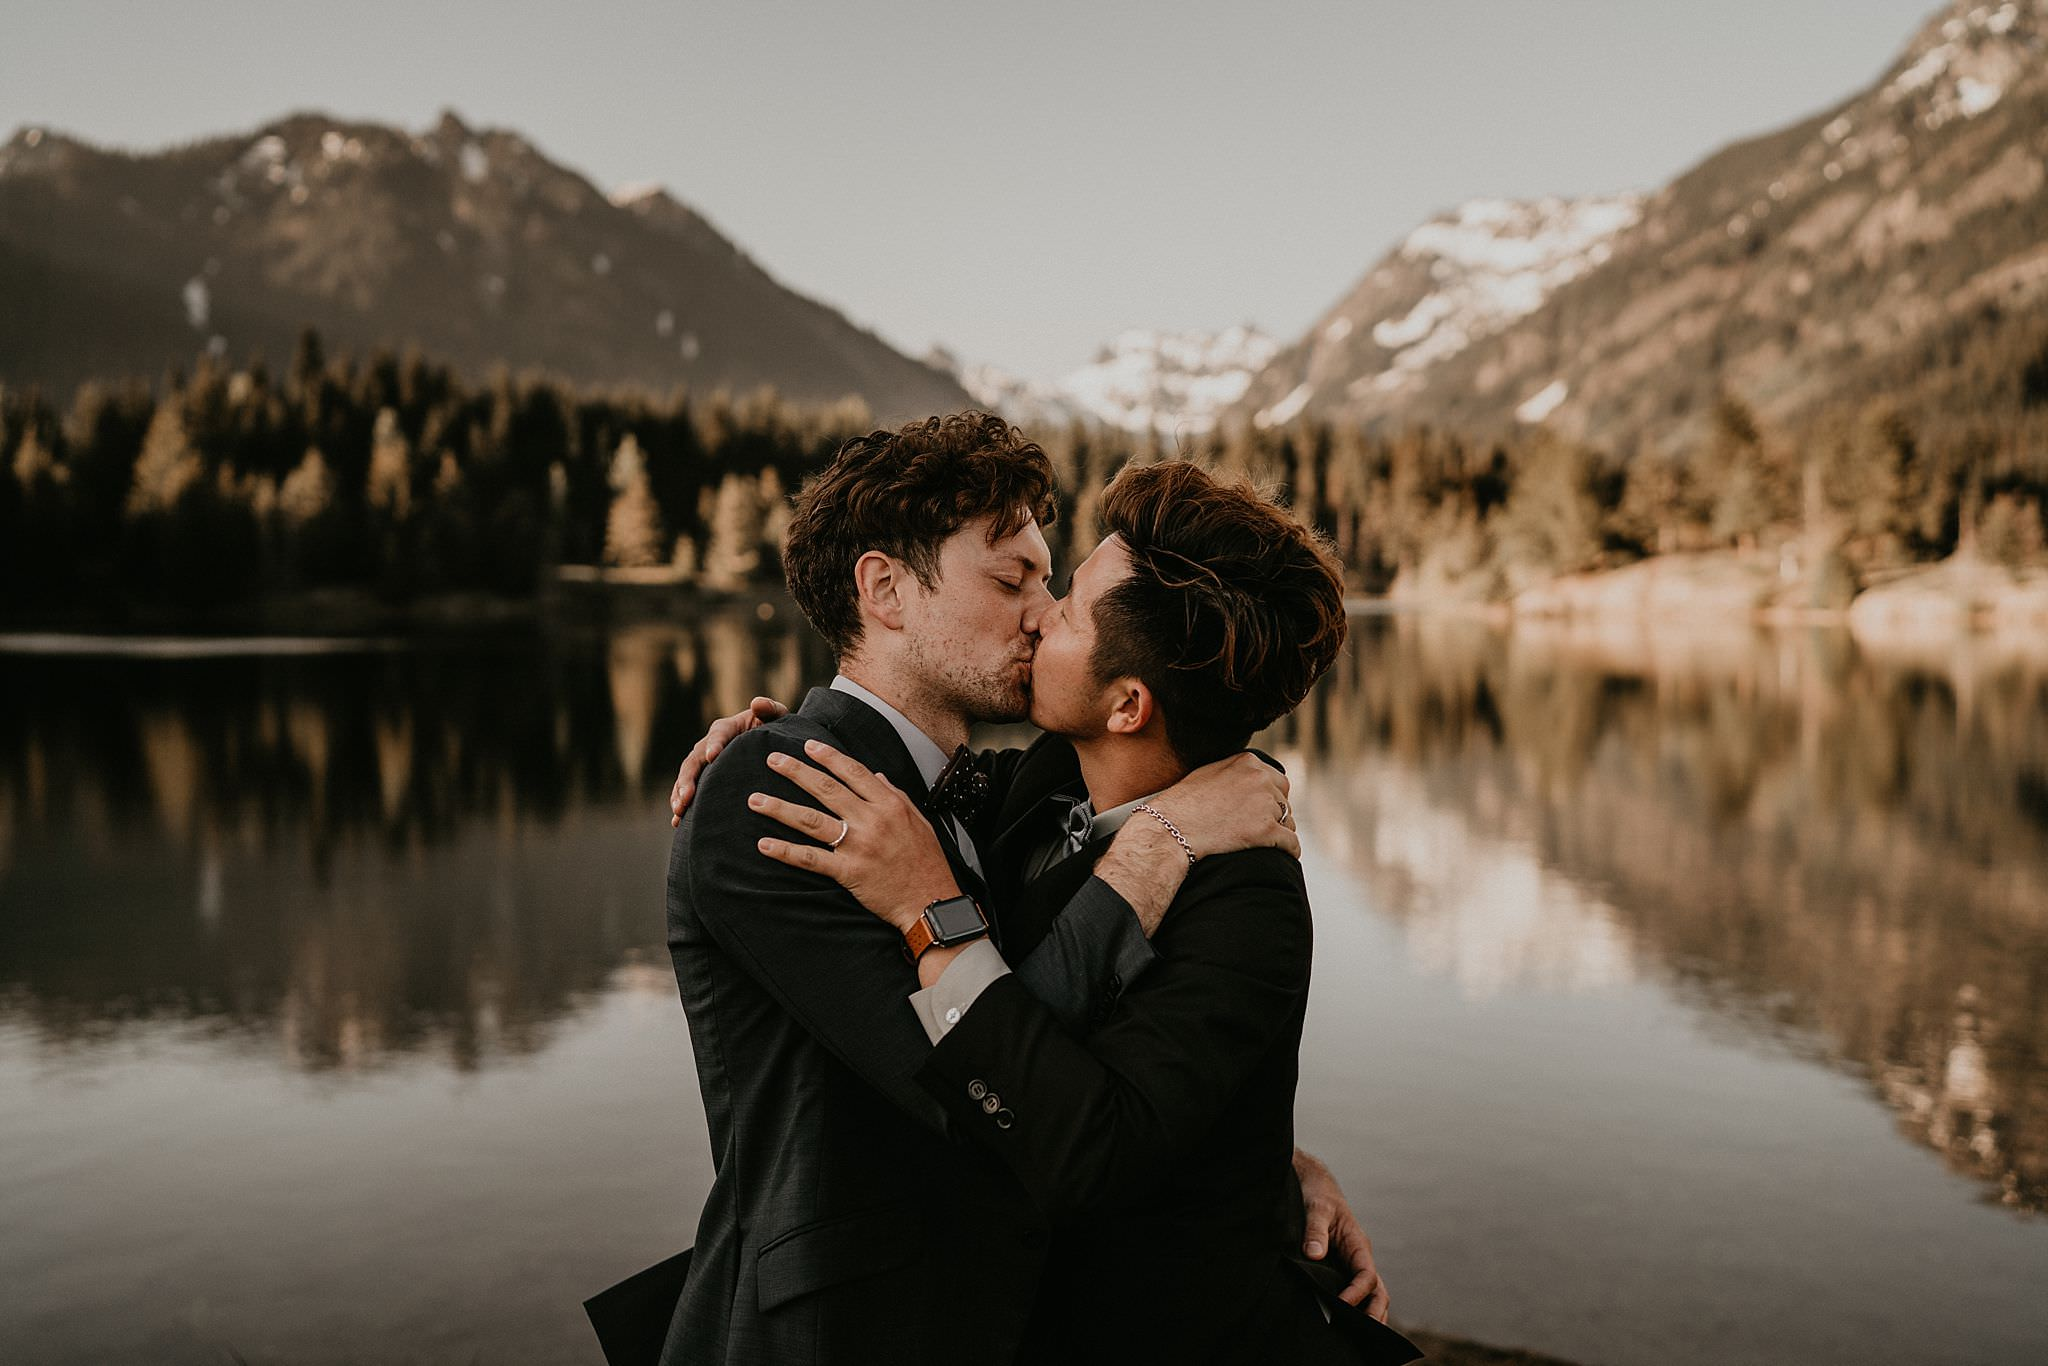 Newlyweds LGBT couple kissed after getting married by Snpqualmie Pass at Gold Creek Pond